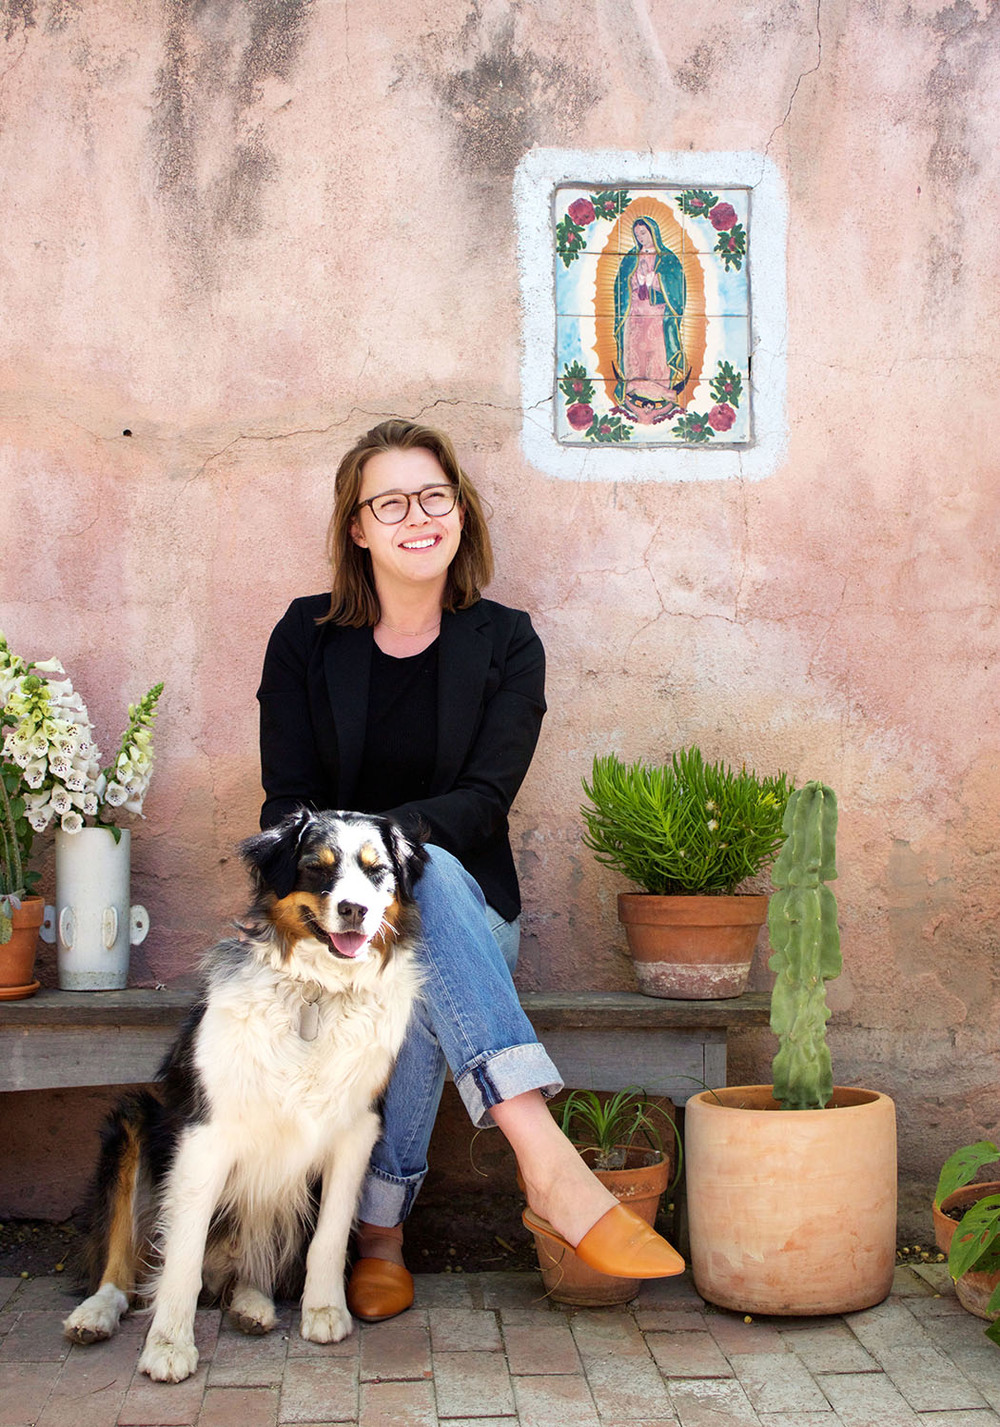 Amanda and Otis, her Australian Shepard, relax outside by a tile portrait of the Virgin Mary installed by her grandfather, who lived in the adobe before her.